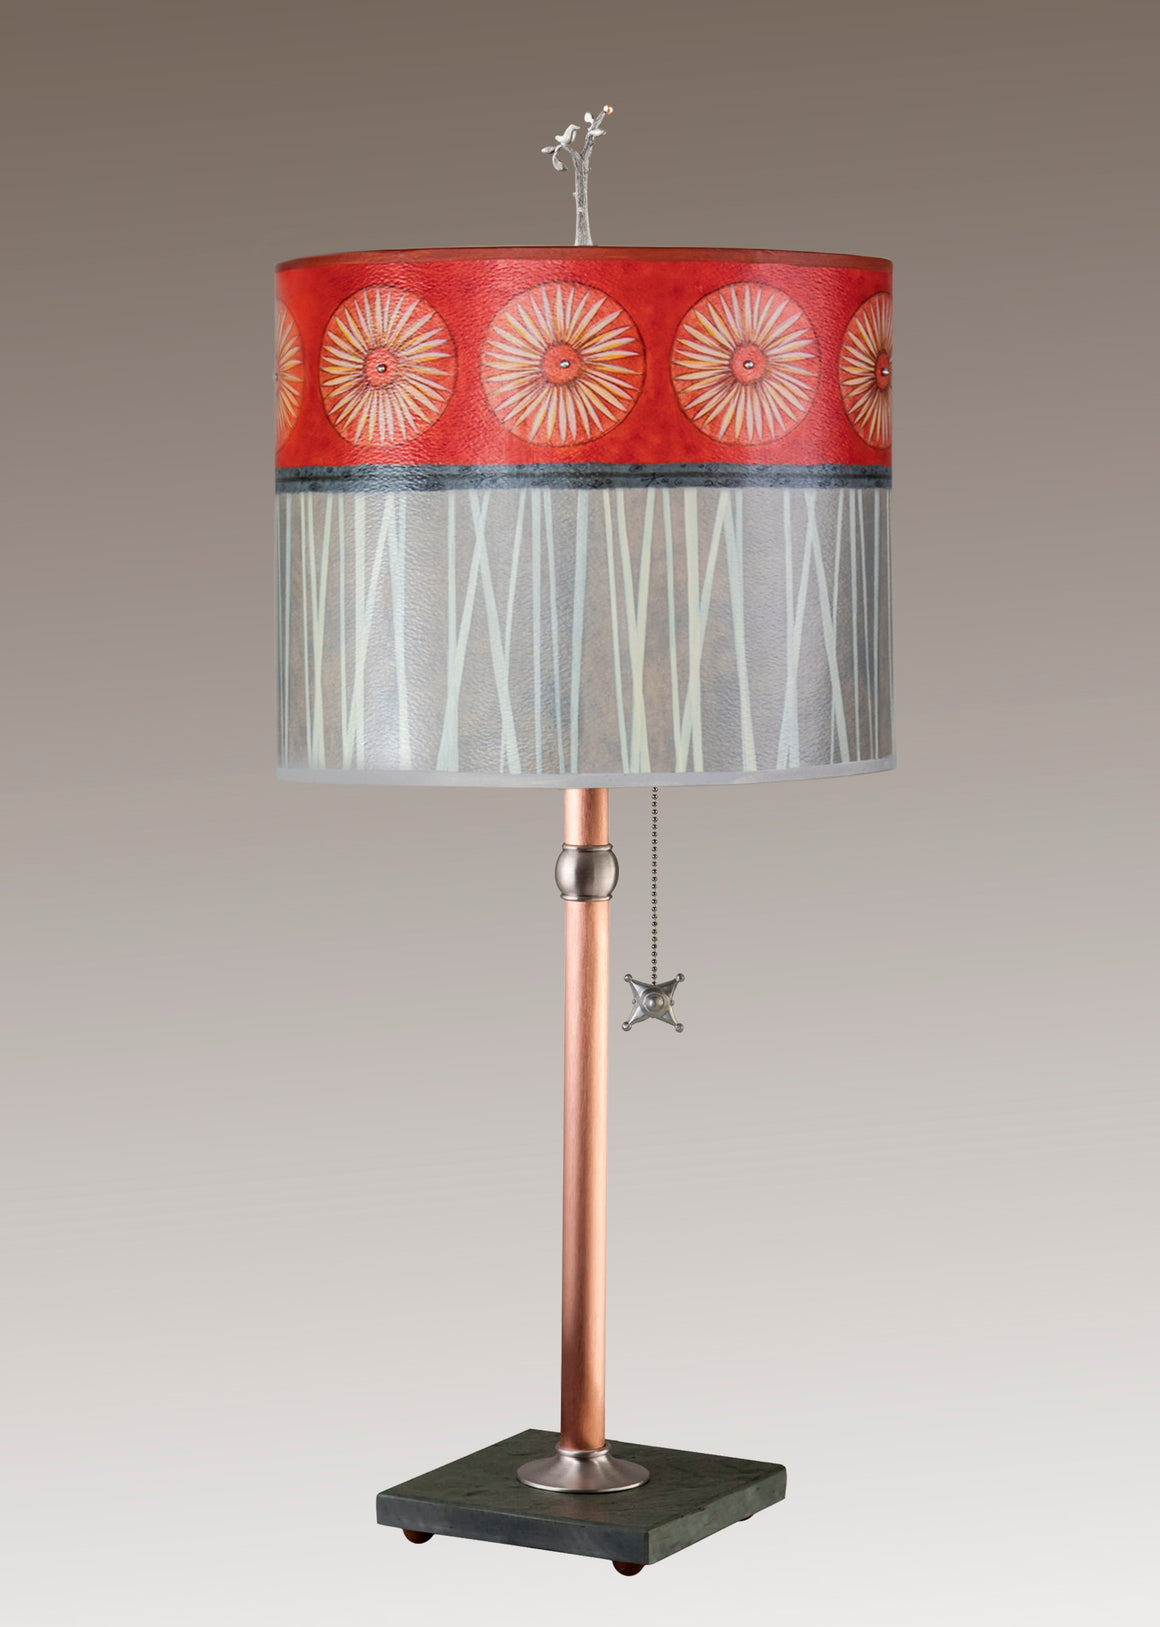 Copper Table Lamp on Vermont Slate Base with Large Oval Shade in Tang